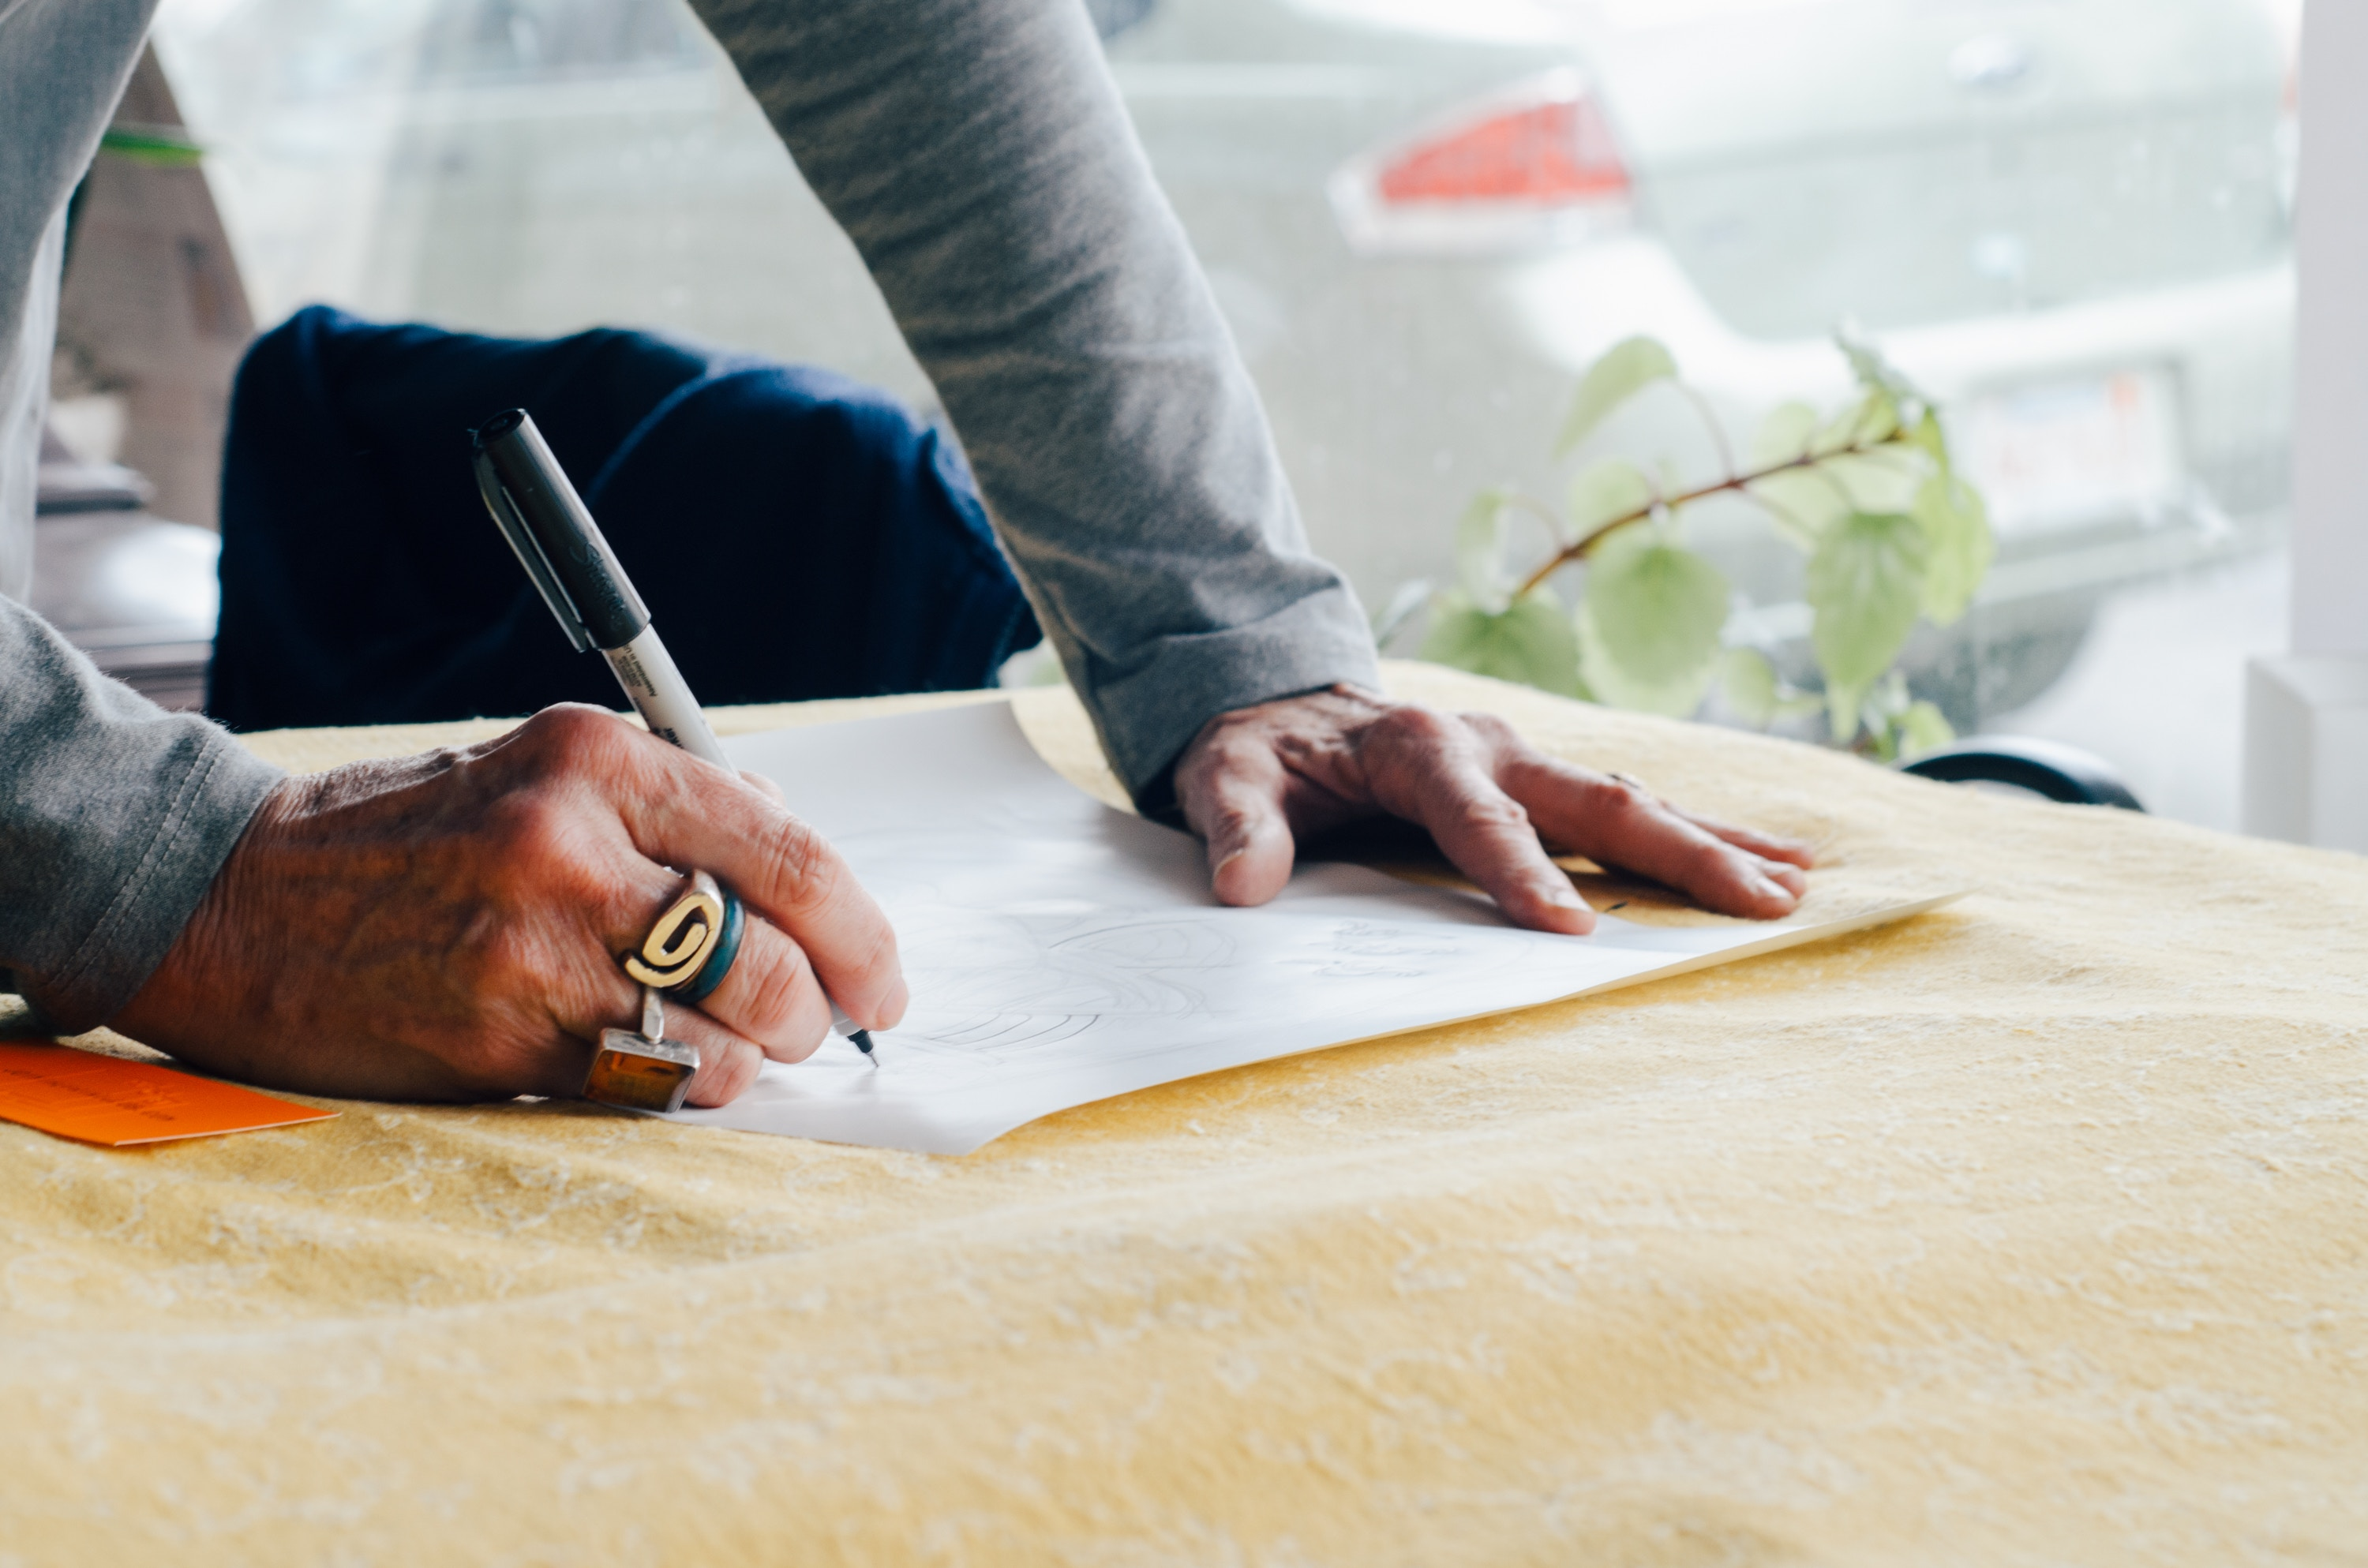 Person writing on plain paper, only the hands and forearms are visible.